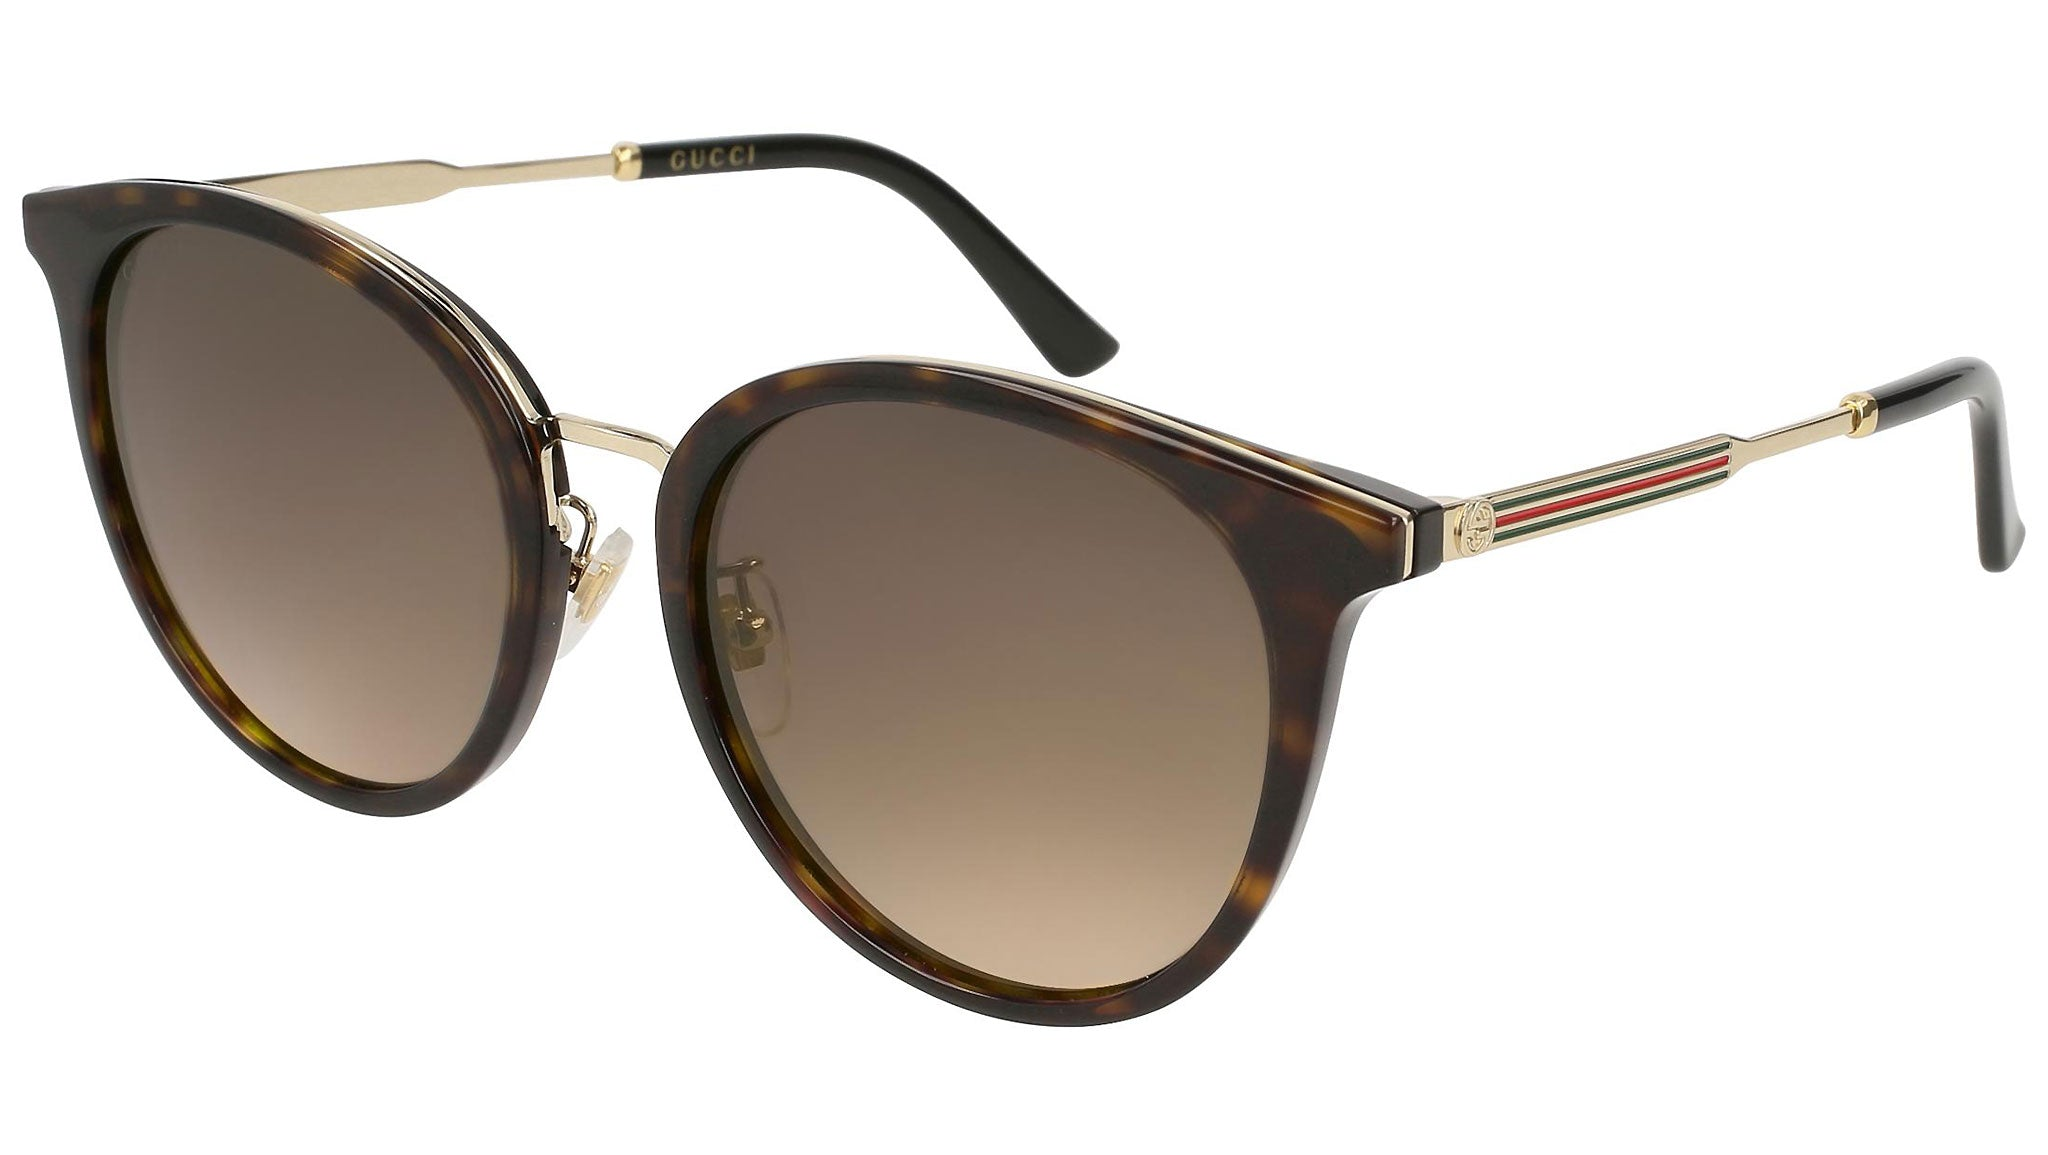 GG0204SK dark havana and brown